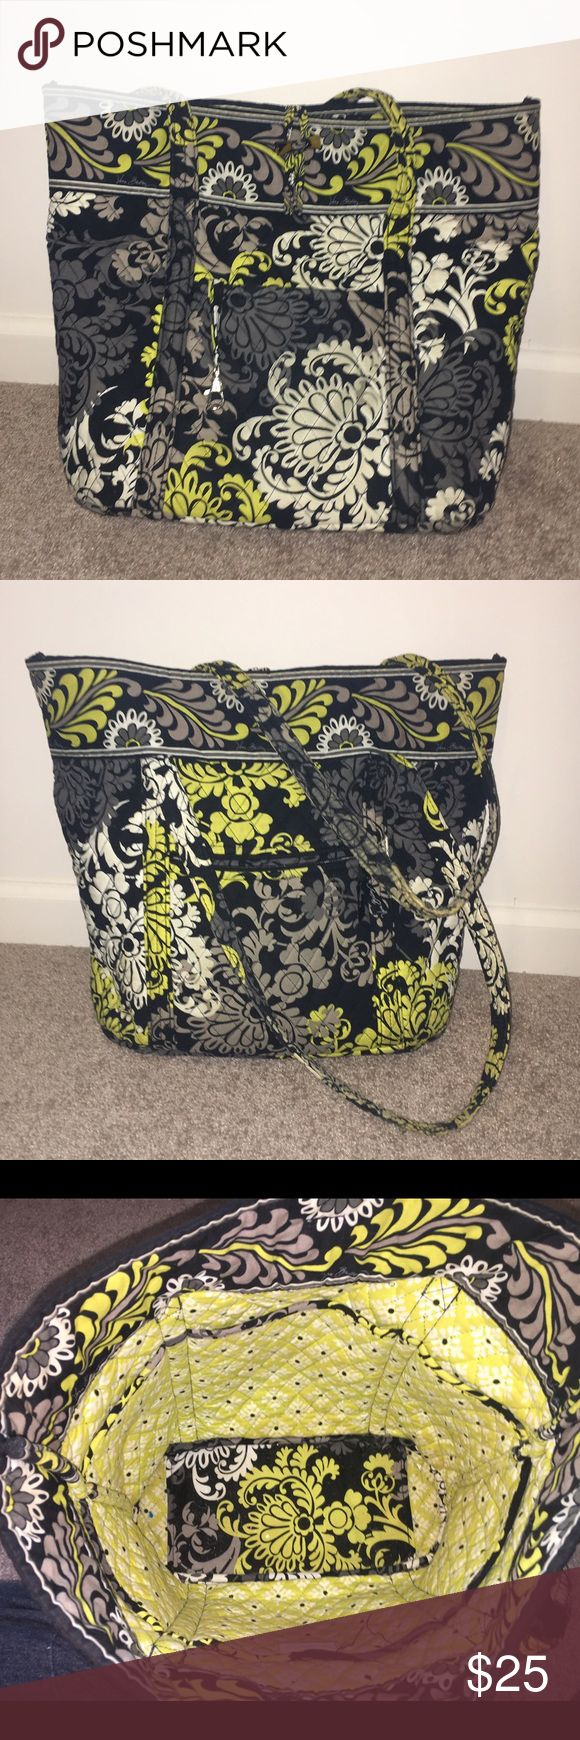 Vera Bradley tote bag Some wear on the straps as pictured. Vera Bradley Bags Totes